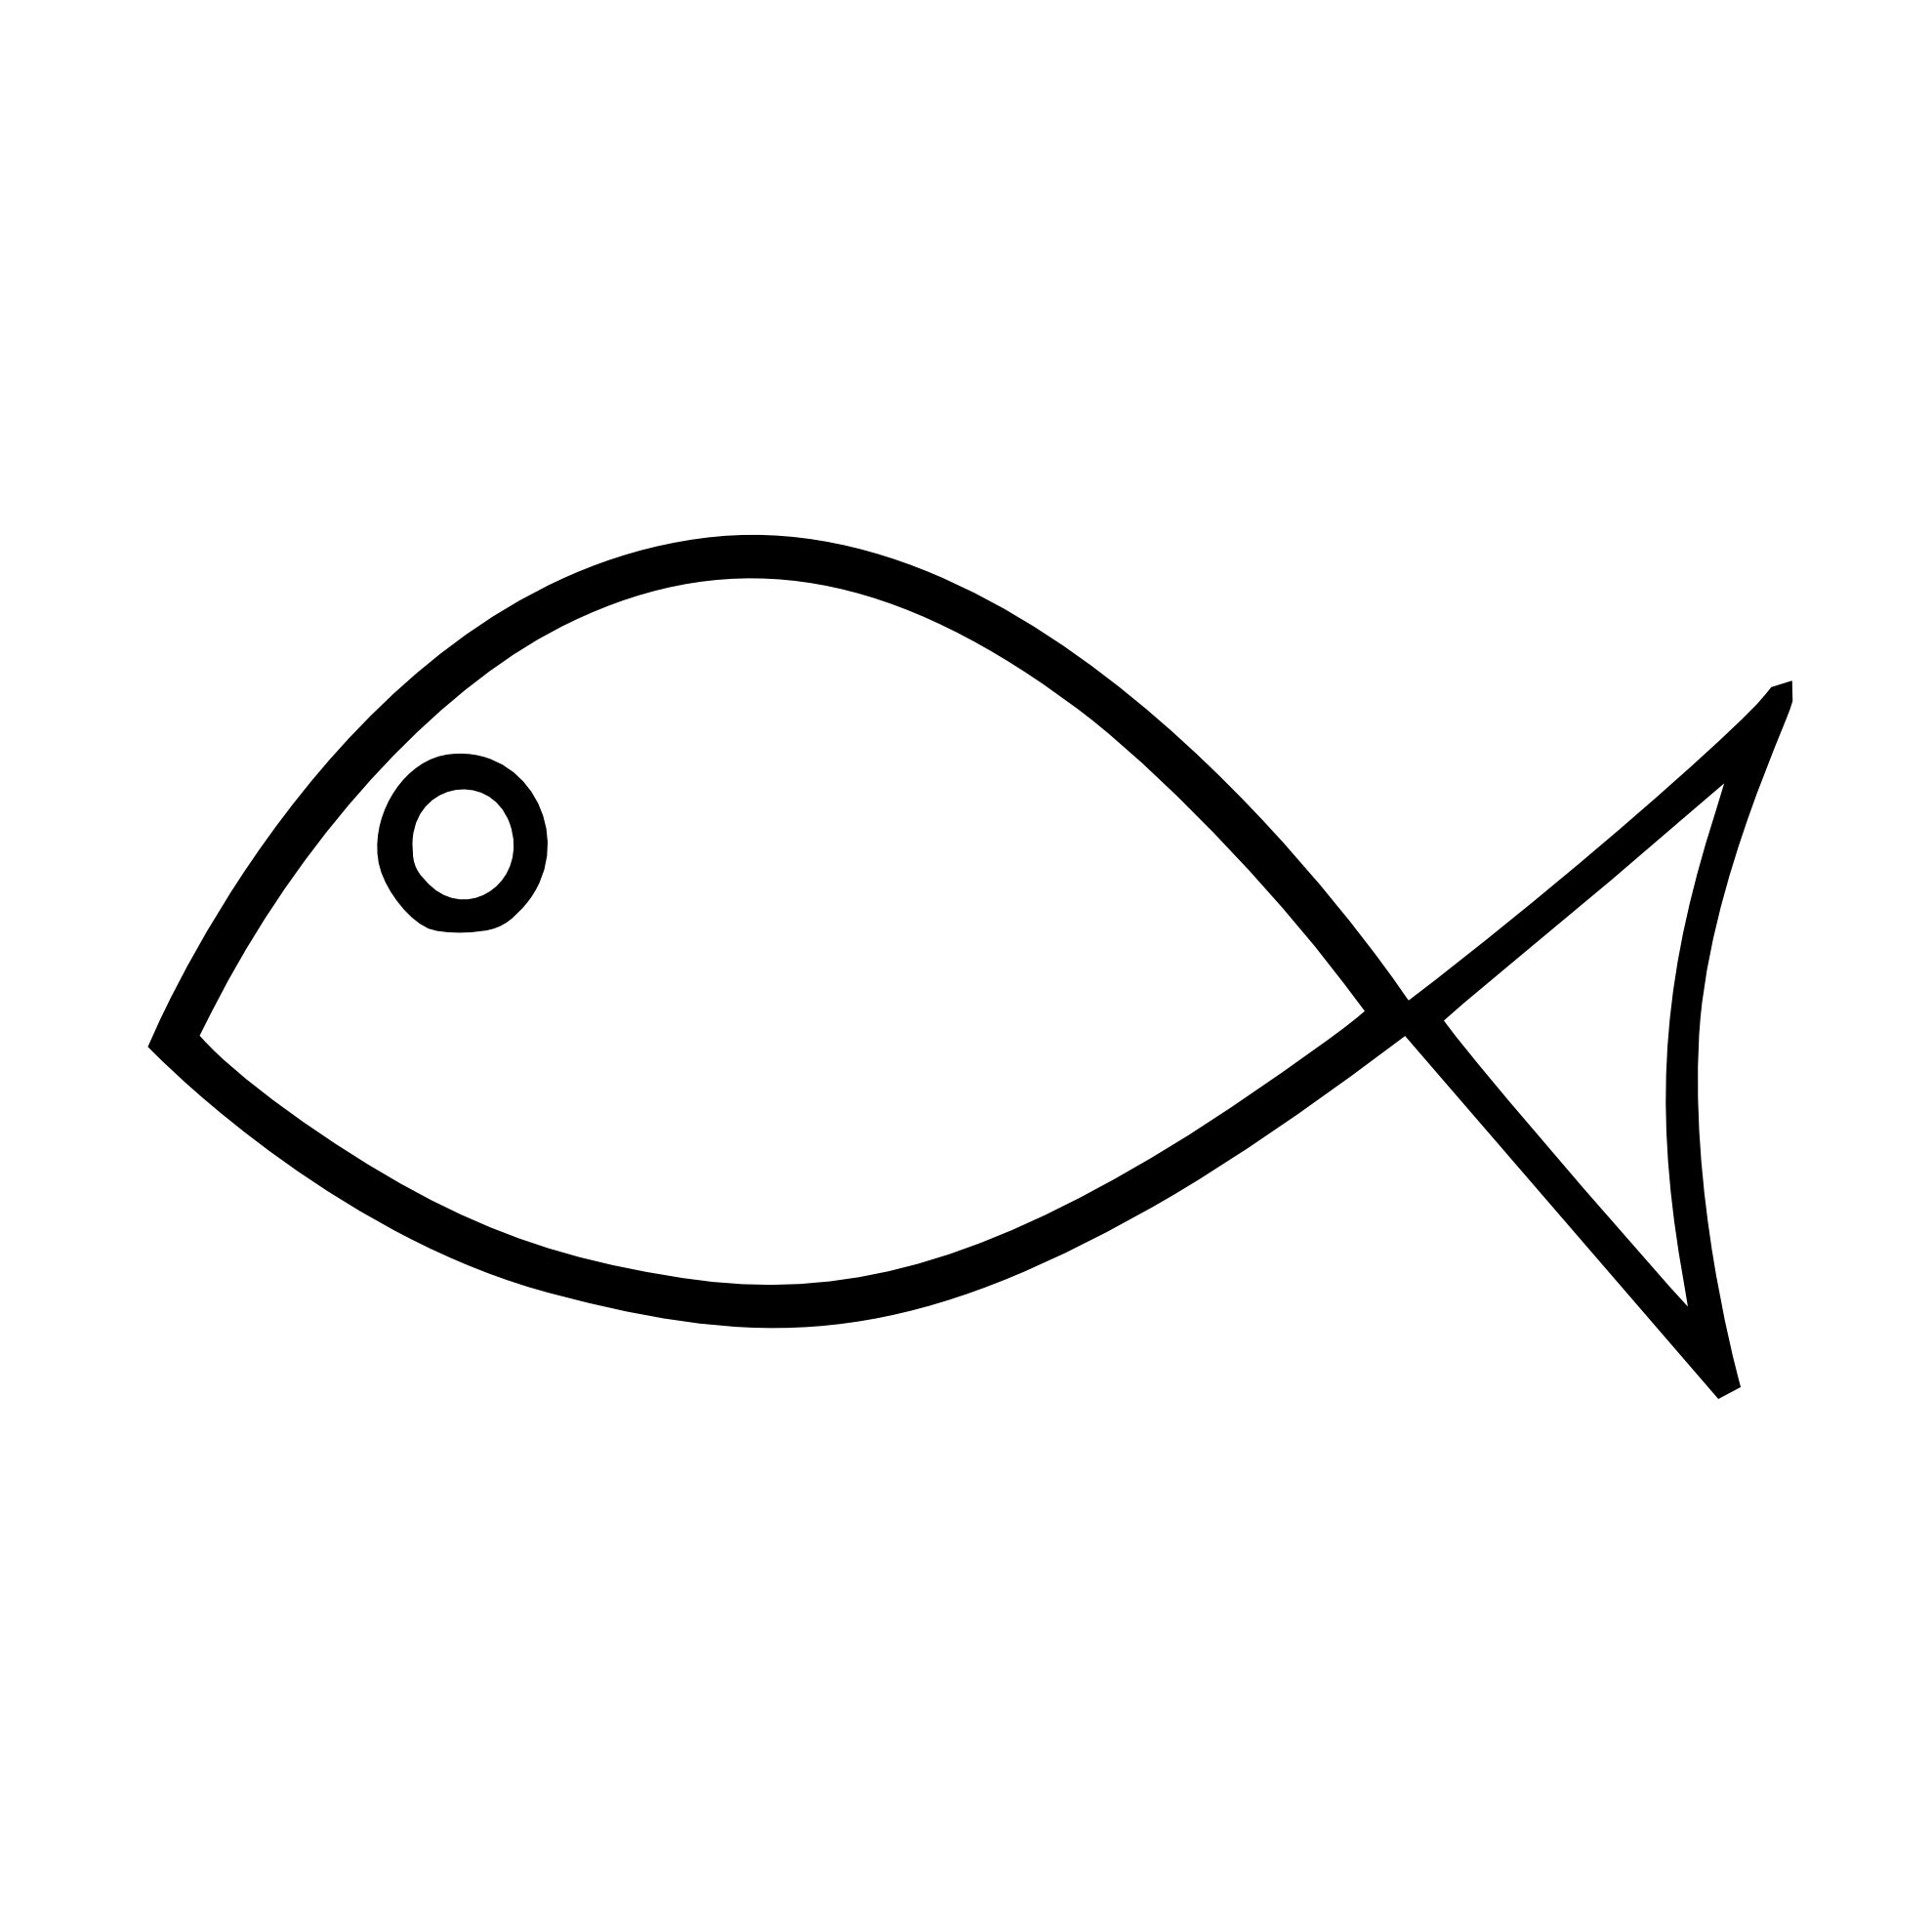 Simple Fish Line Art : Simple fish drawings clipart best